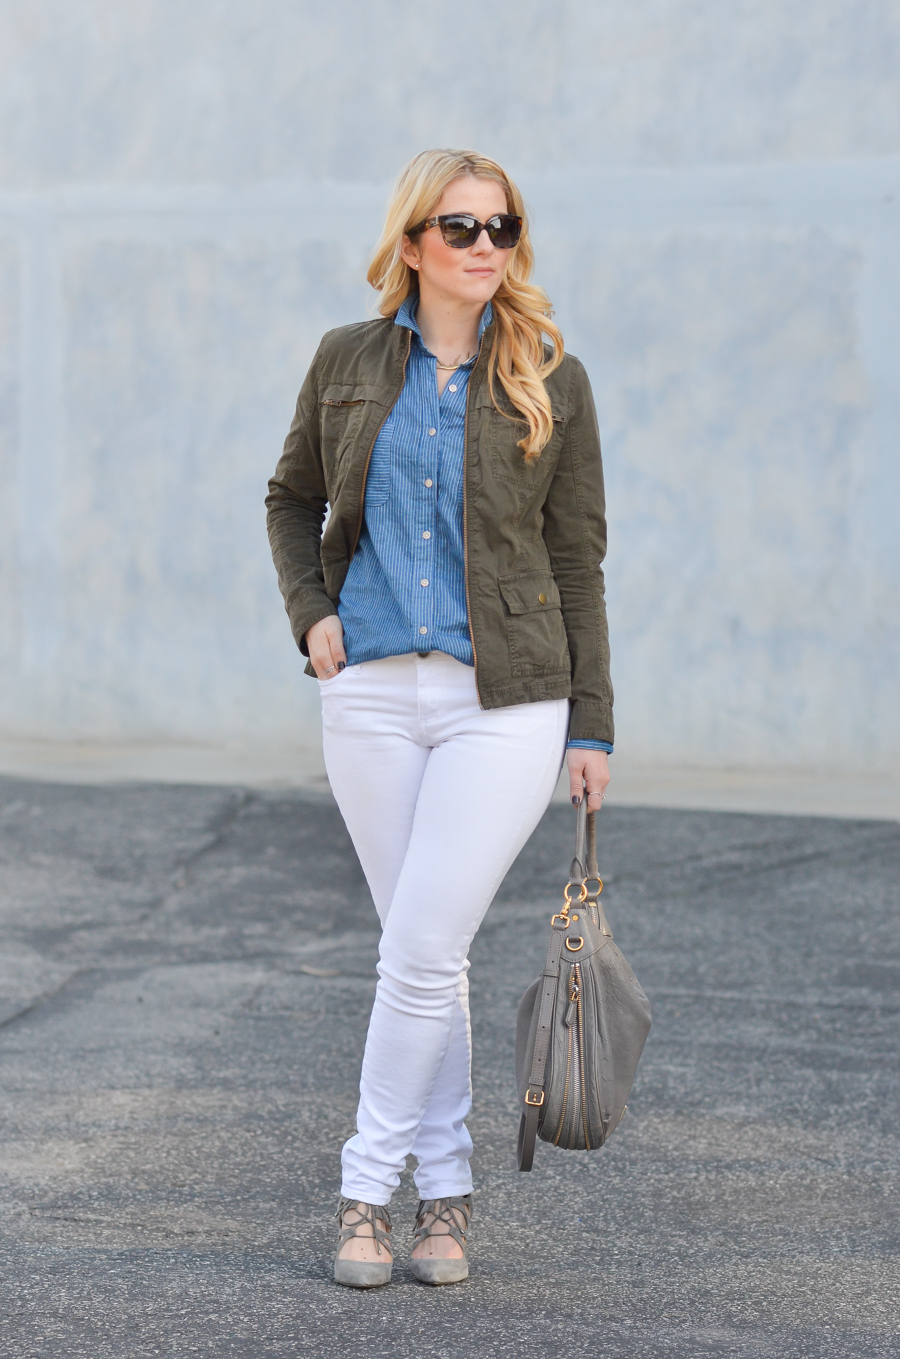 California Tailored Blue Shirt | White Jeans Outfit in Winter